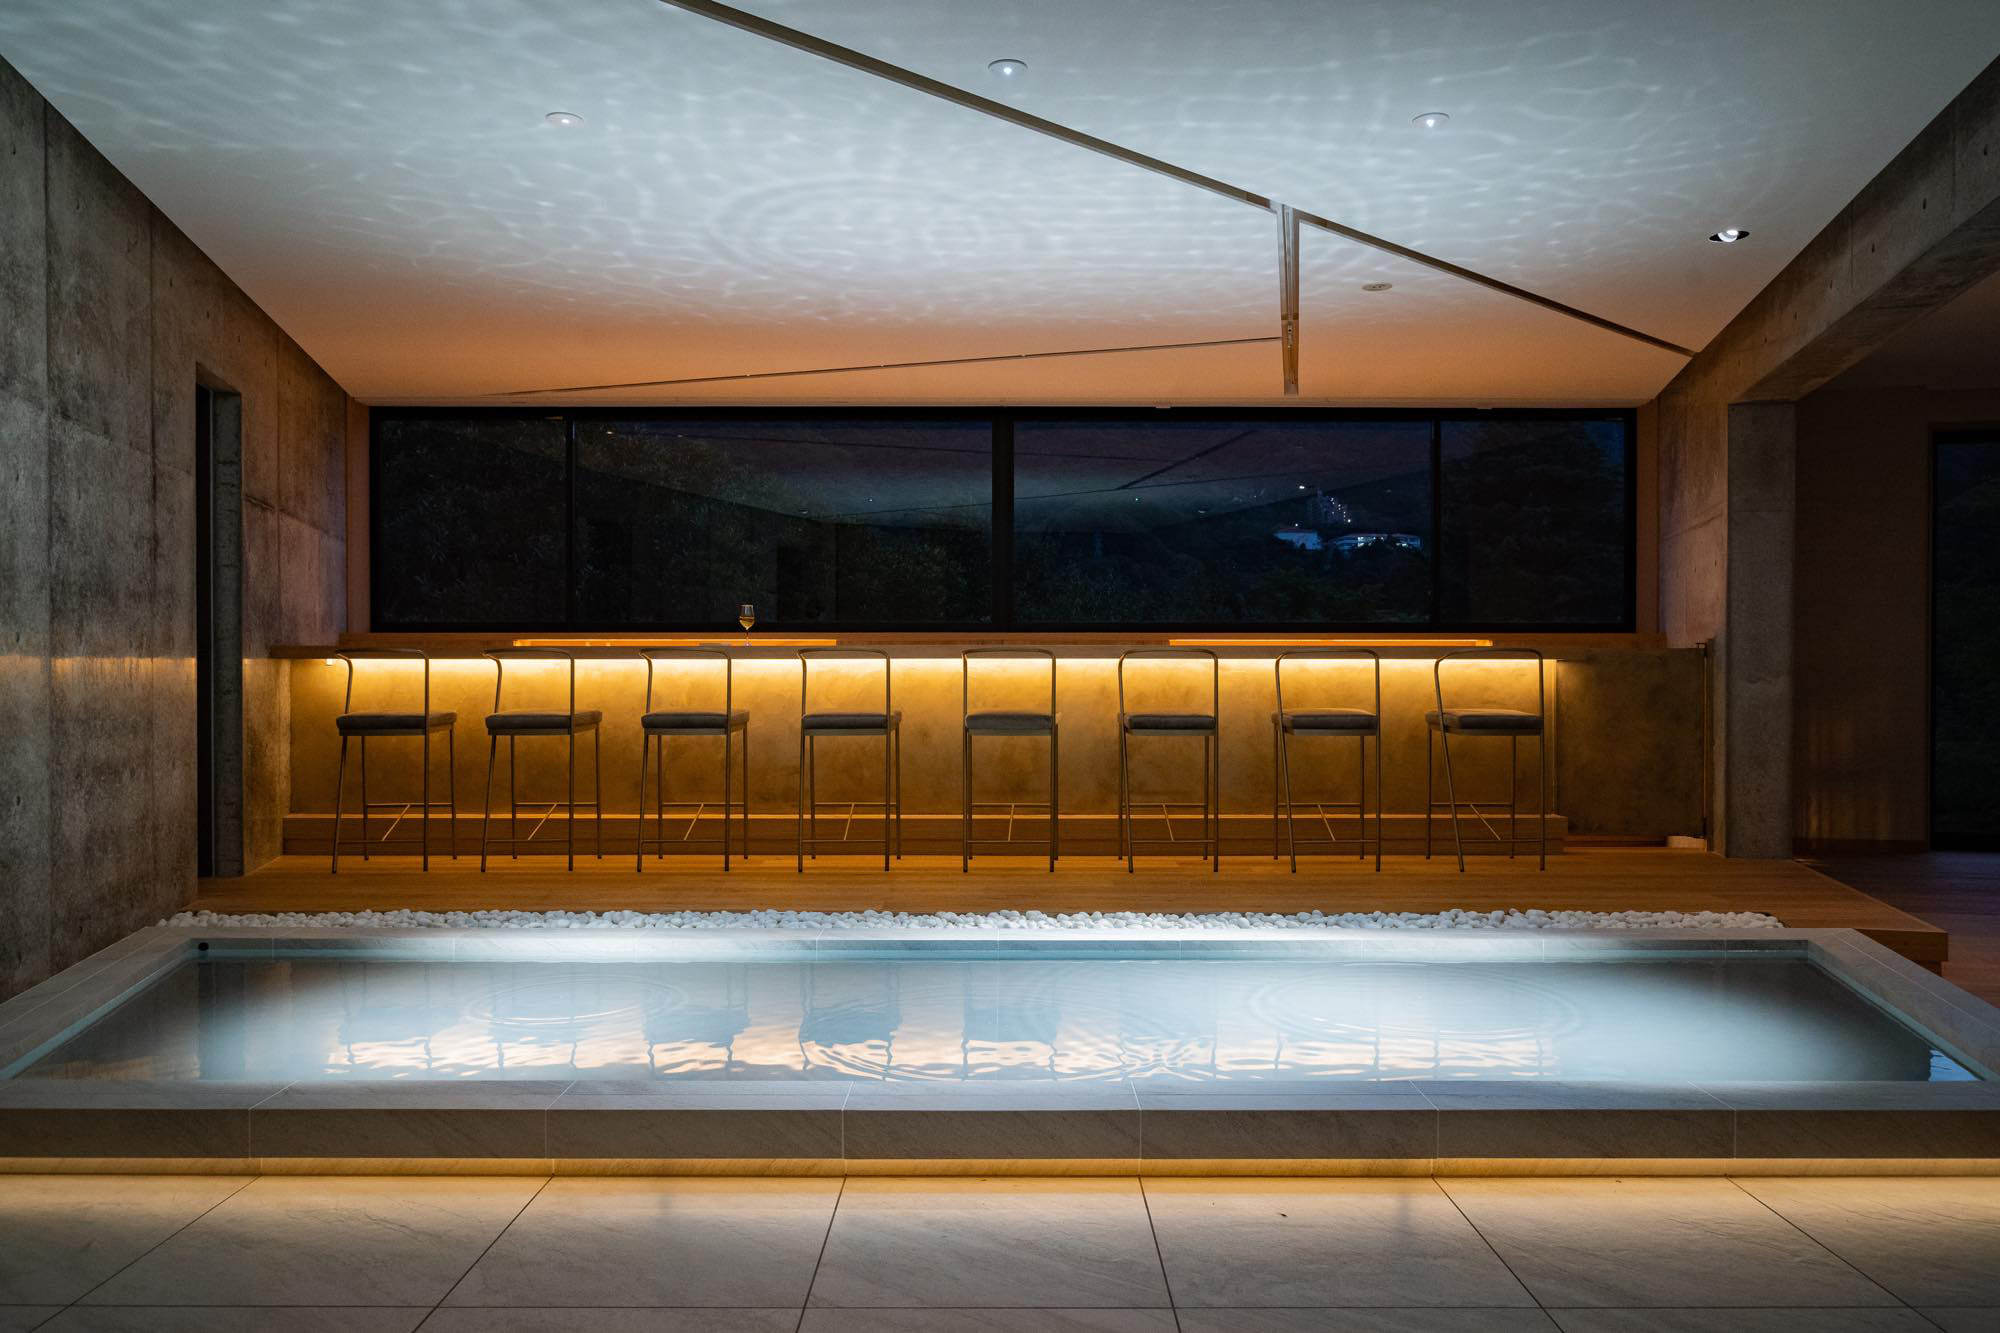 With the soft lights from the candles and downlights, the bar becomes a place to relax and spend the quiet evening.